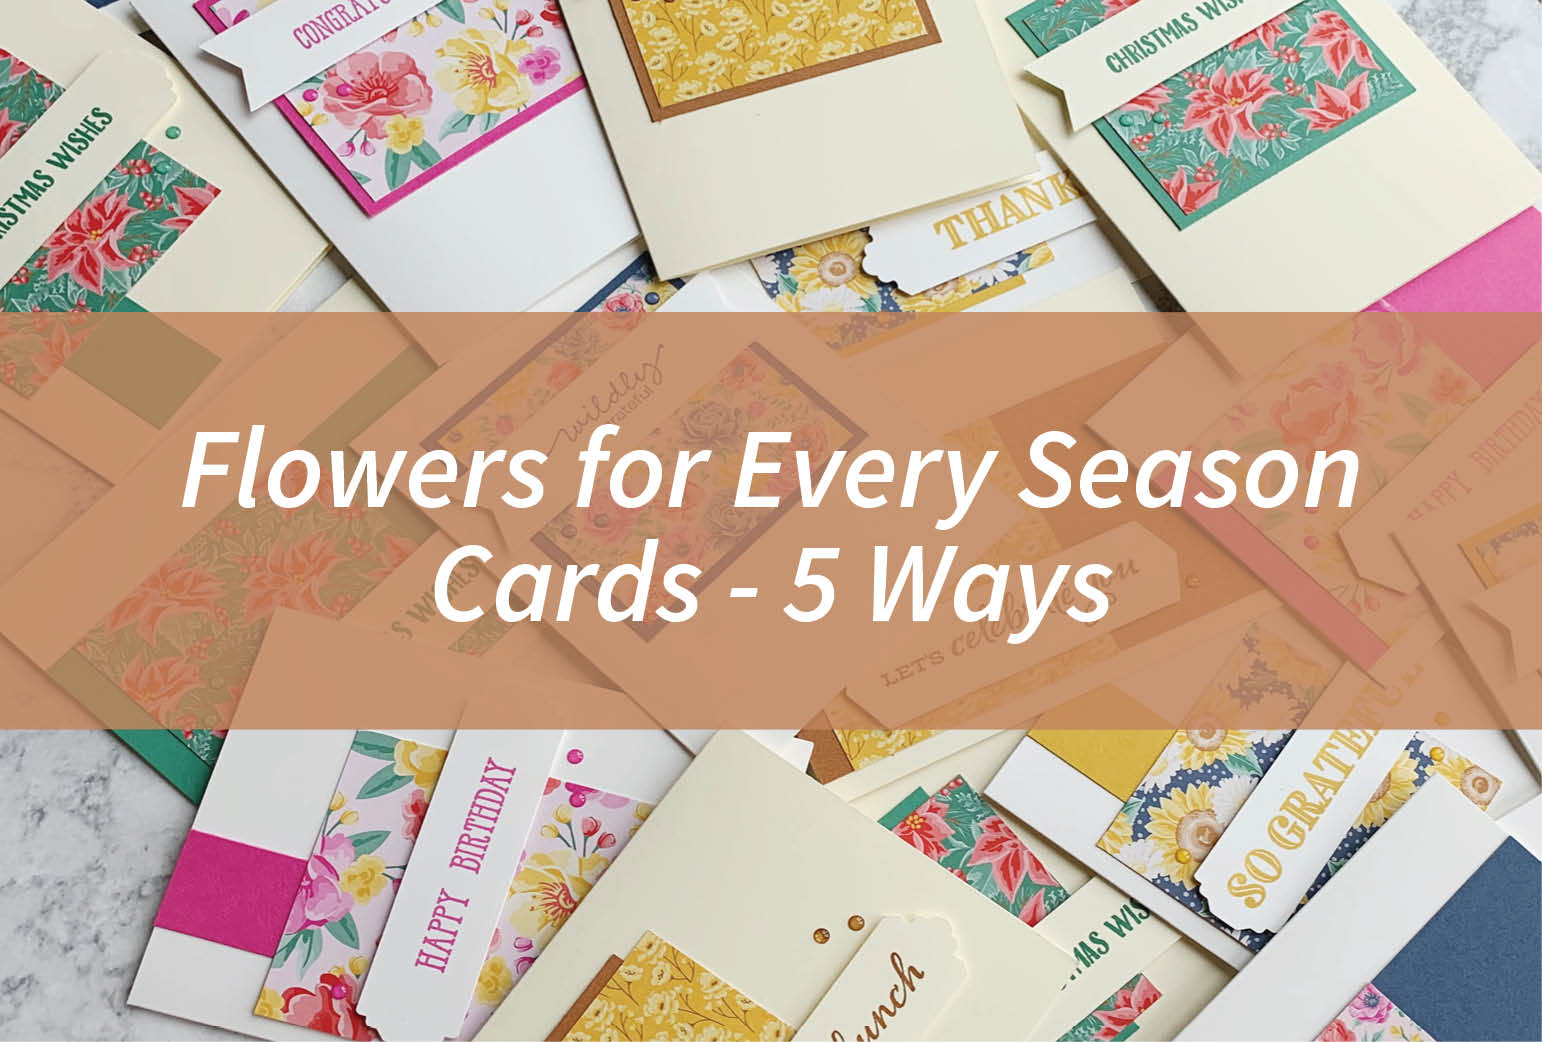 Flowers for Every Season Cards – 5 Ways